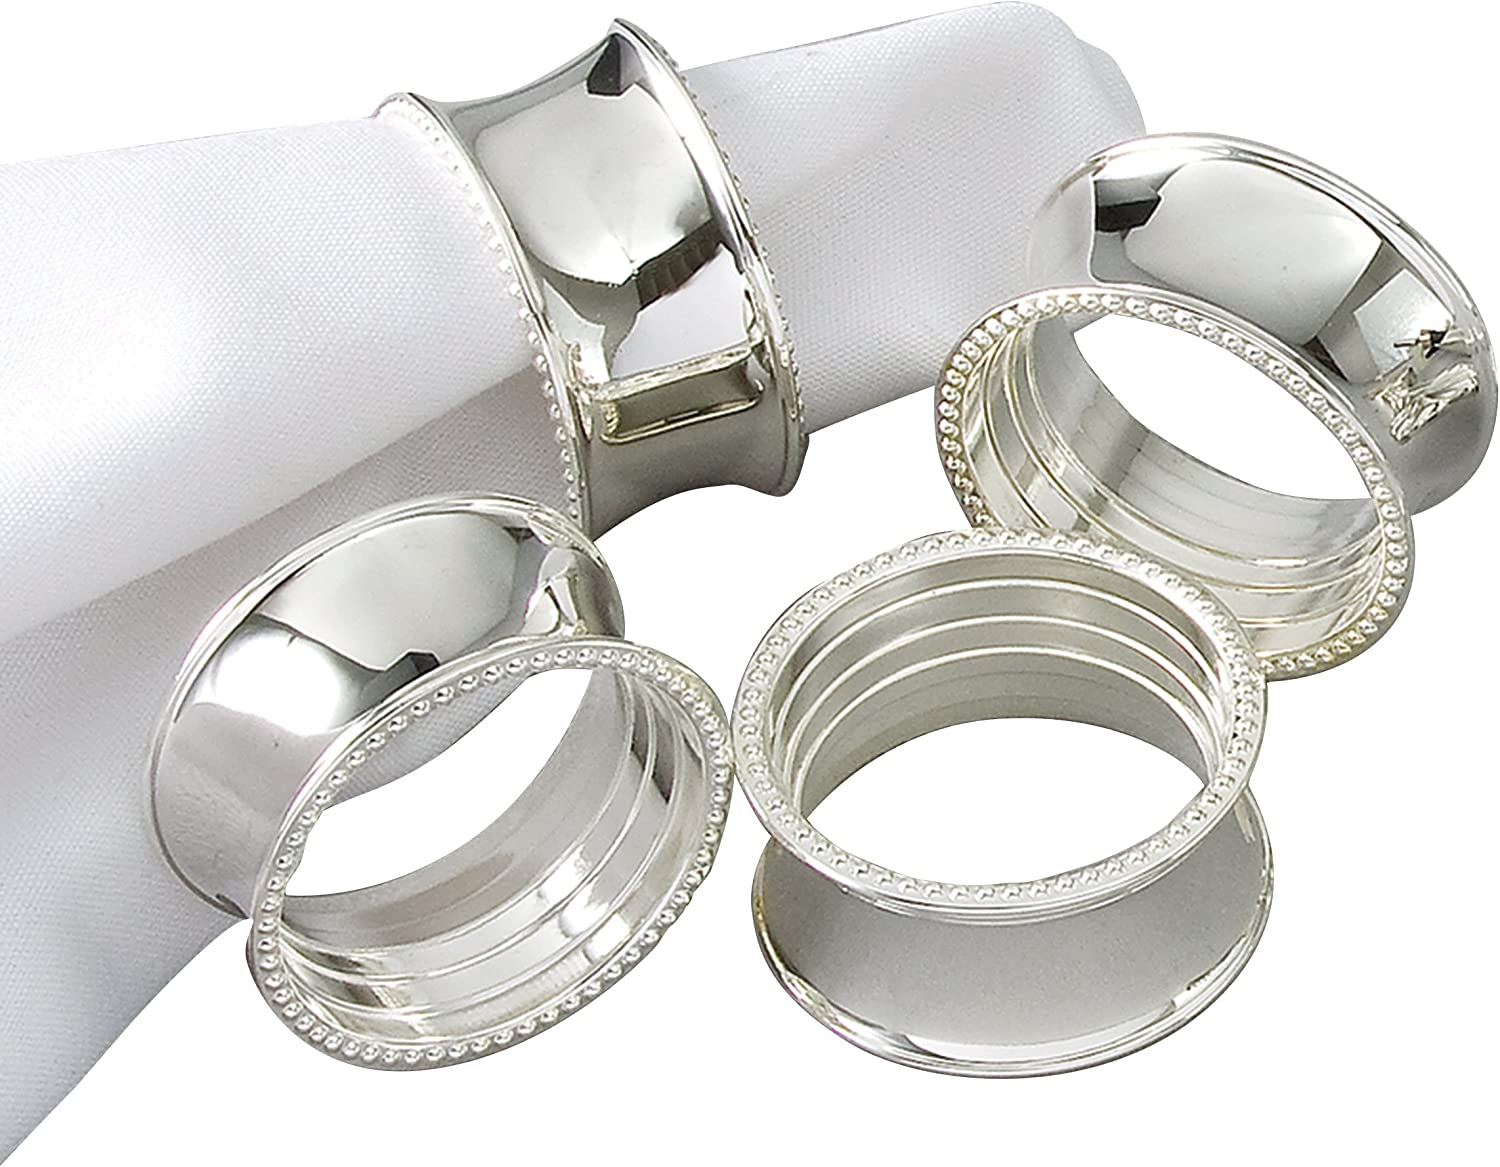 Amazon Com Elegance Tableware Beaded Round Napkin Rings Silver Plated Set Of 4 Dia 3 5cm Kitchen Dining